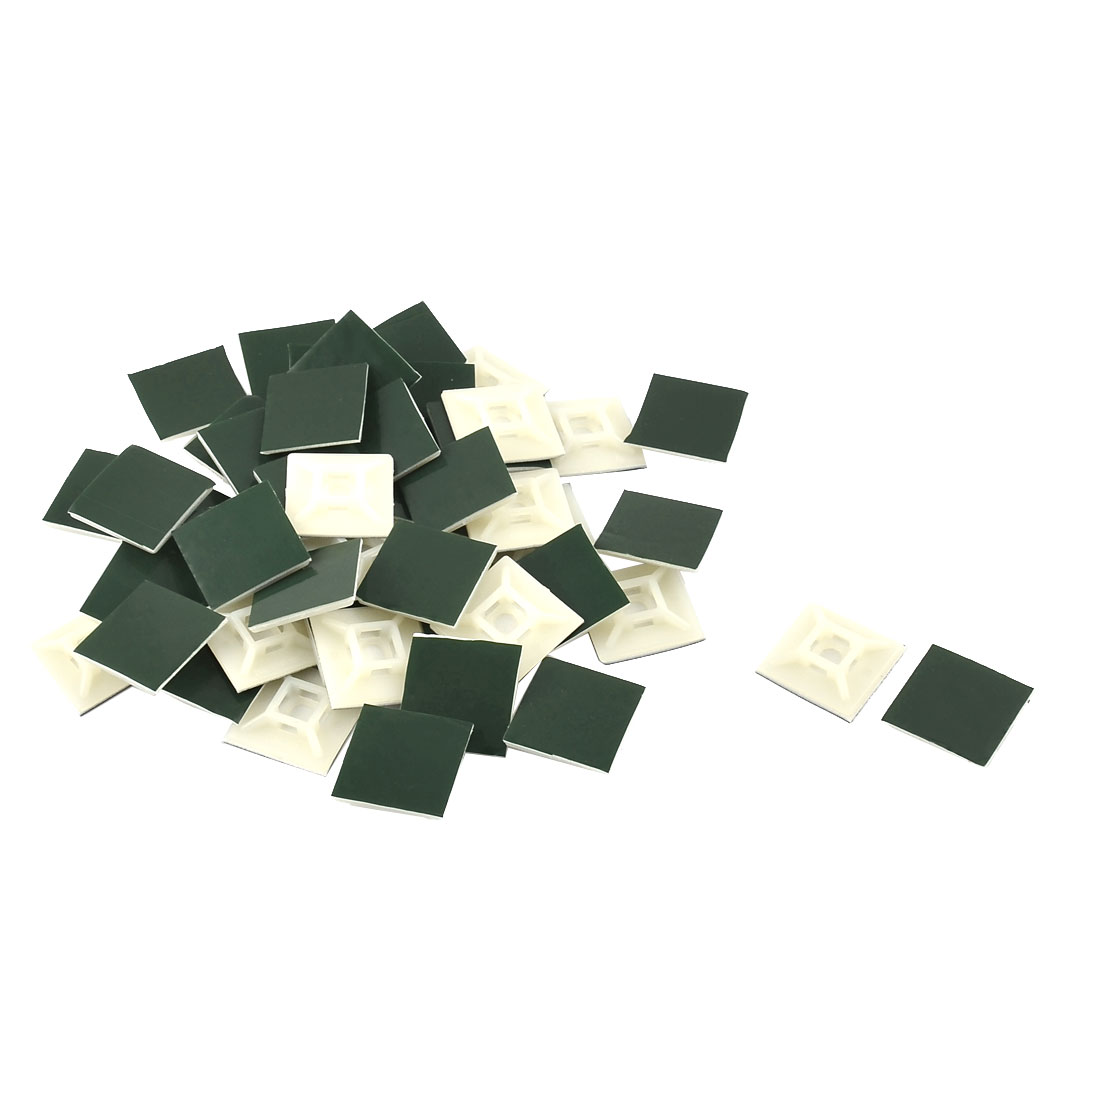 Home Plastic Square Self Adhesive Cord Cable Zip Tie Mount Base 28 x 28mm 50pcs - image 1 of 1